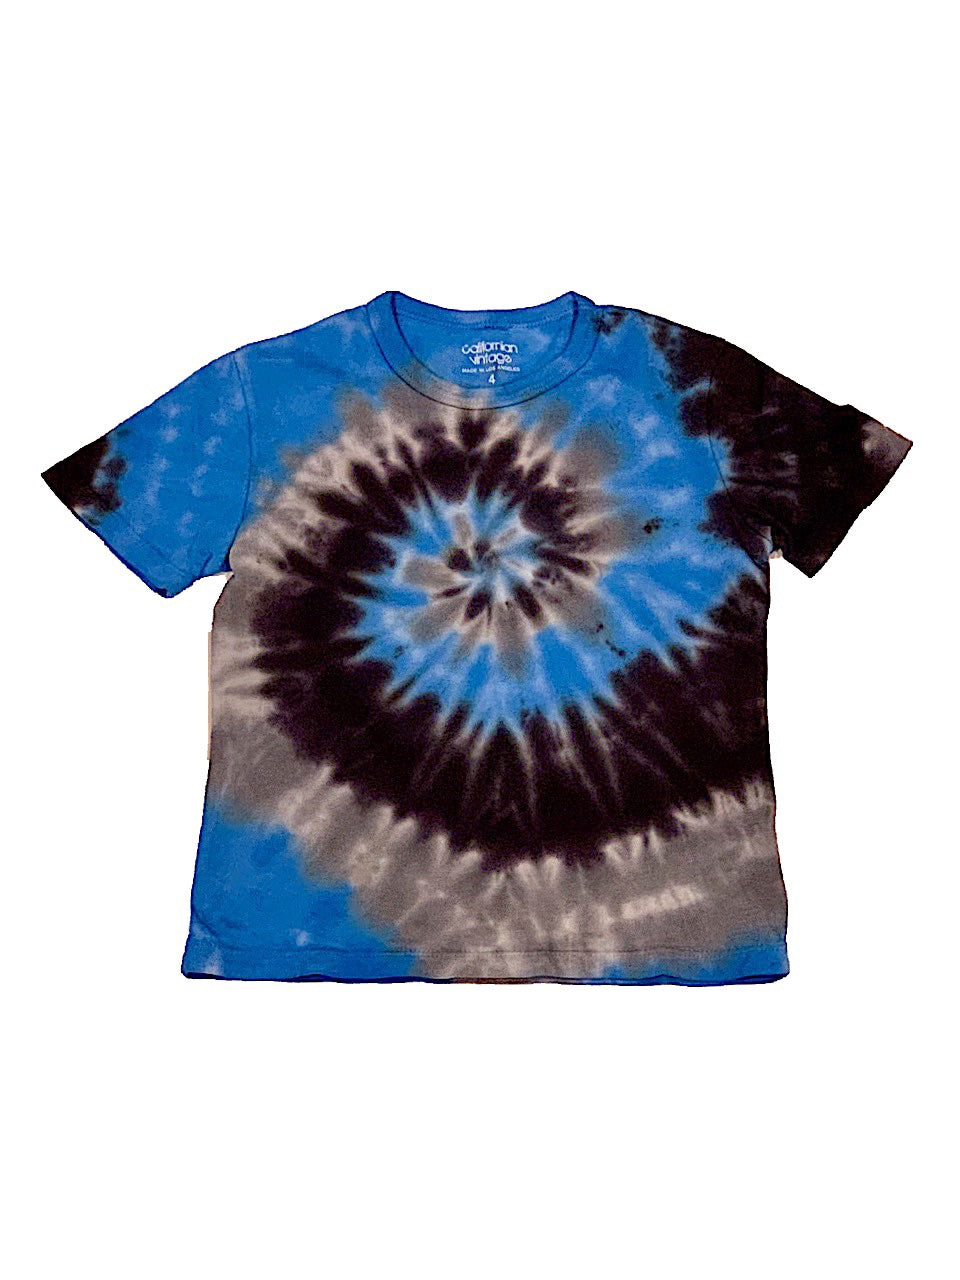 Californian Vintage Blue/Grey/Black Tie Dye Tee Shirt